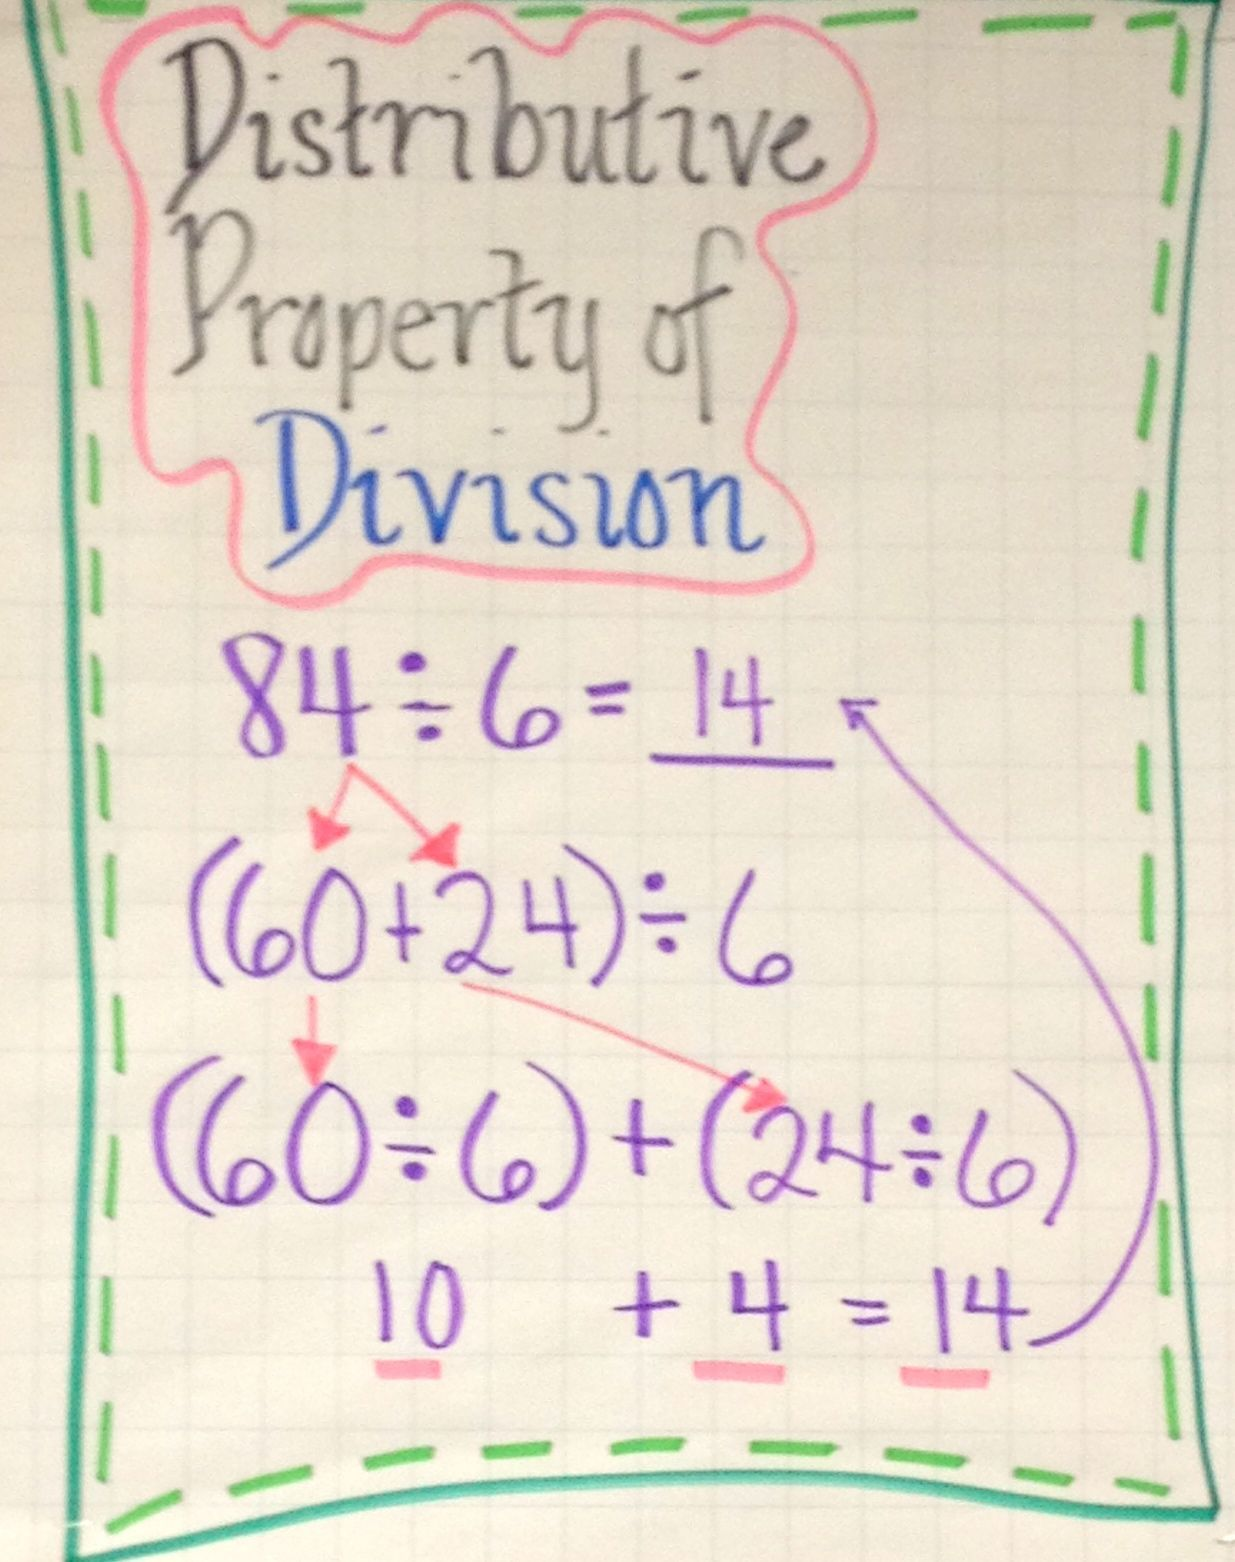 Distributive Property Of Division